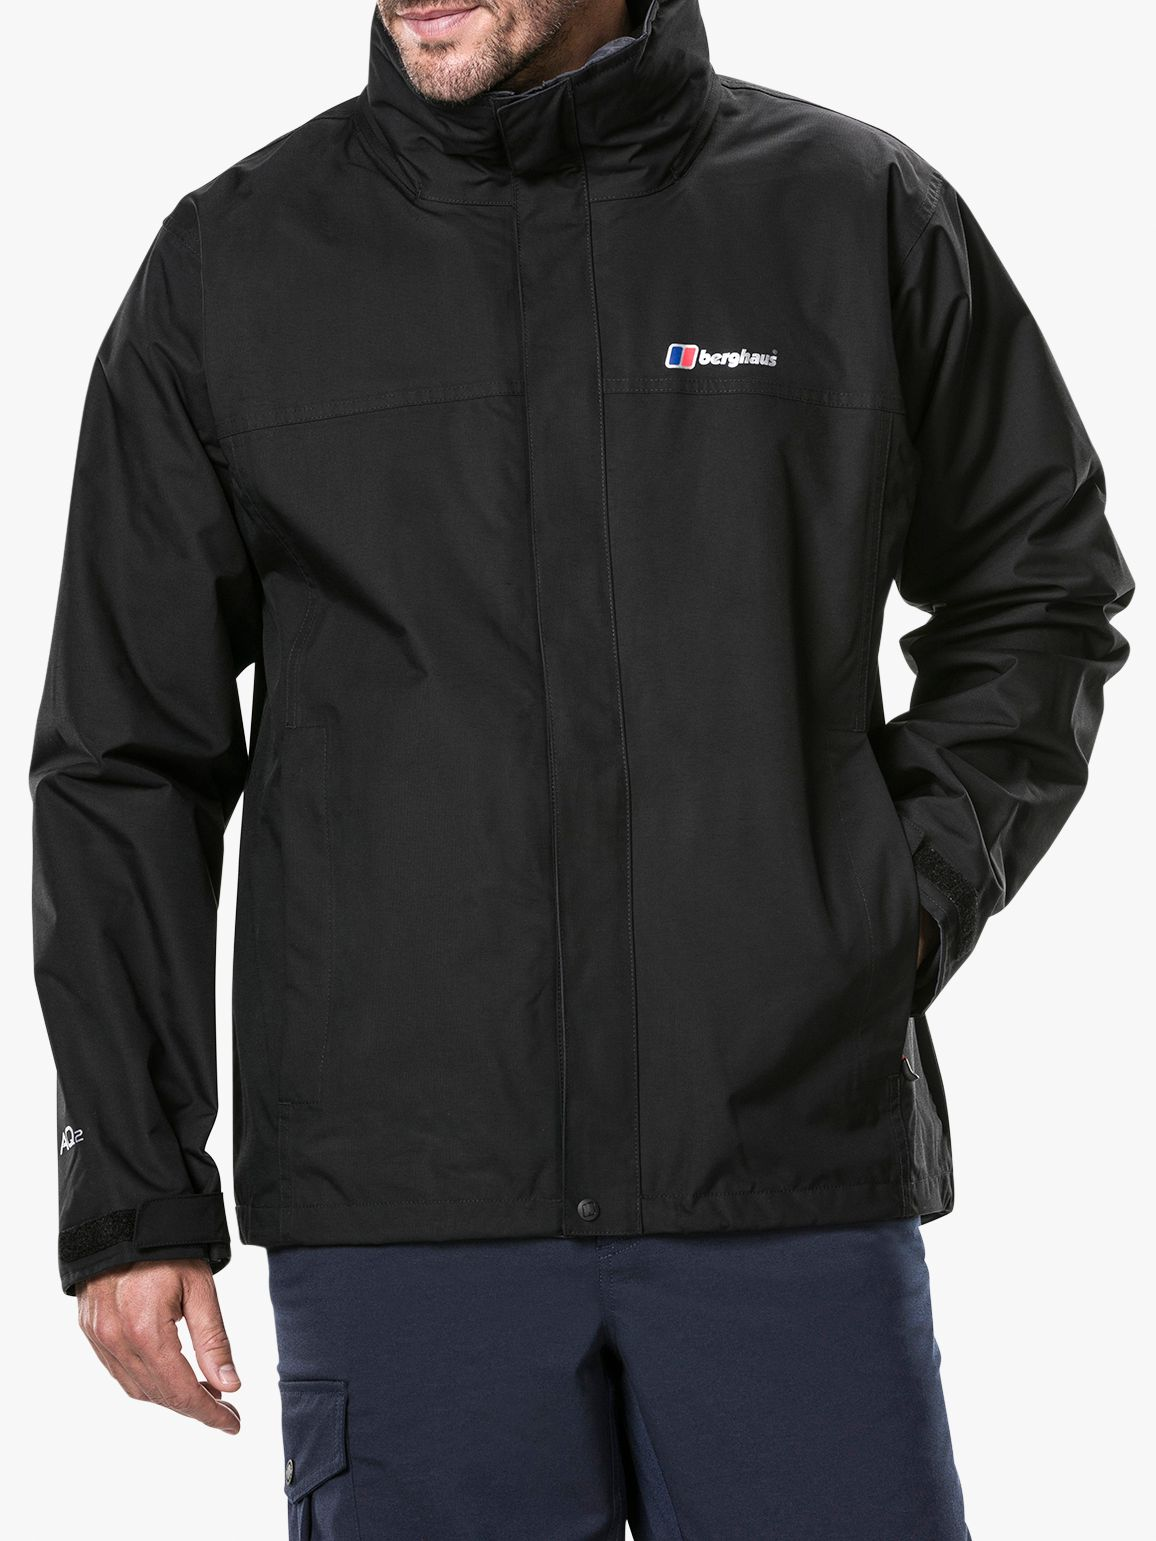 Berghaus Mens RG Alpha 3-in-1 Waterproof Jacket with Fleece